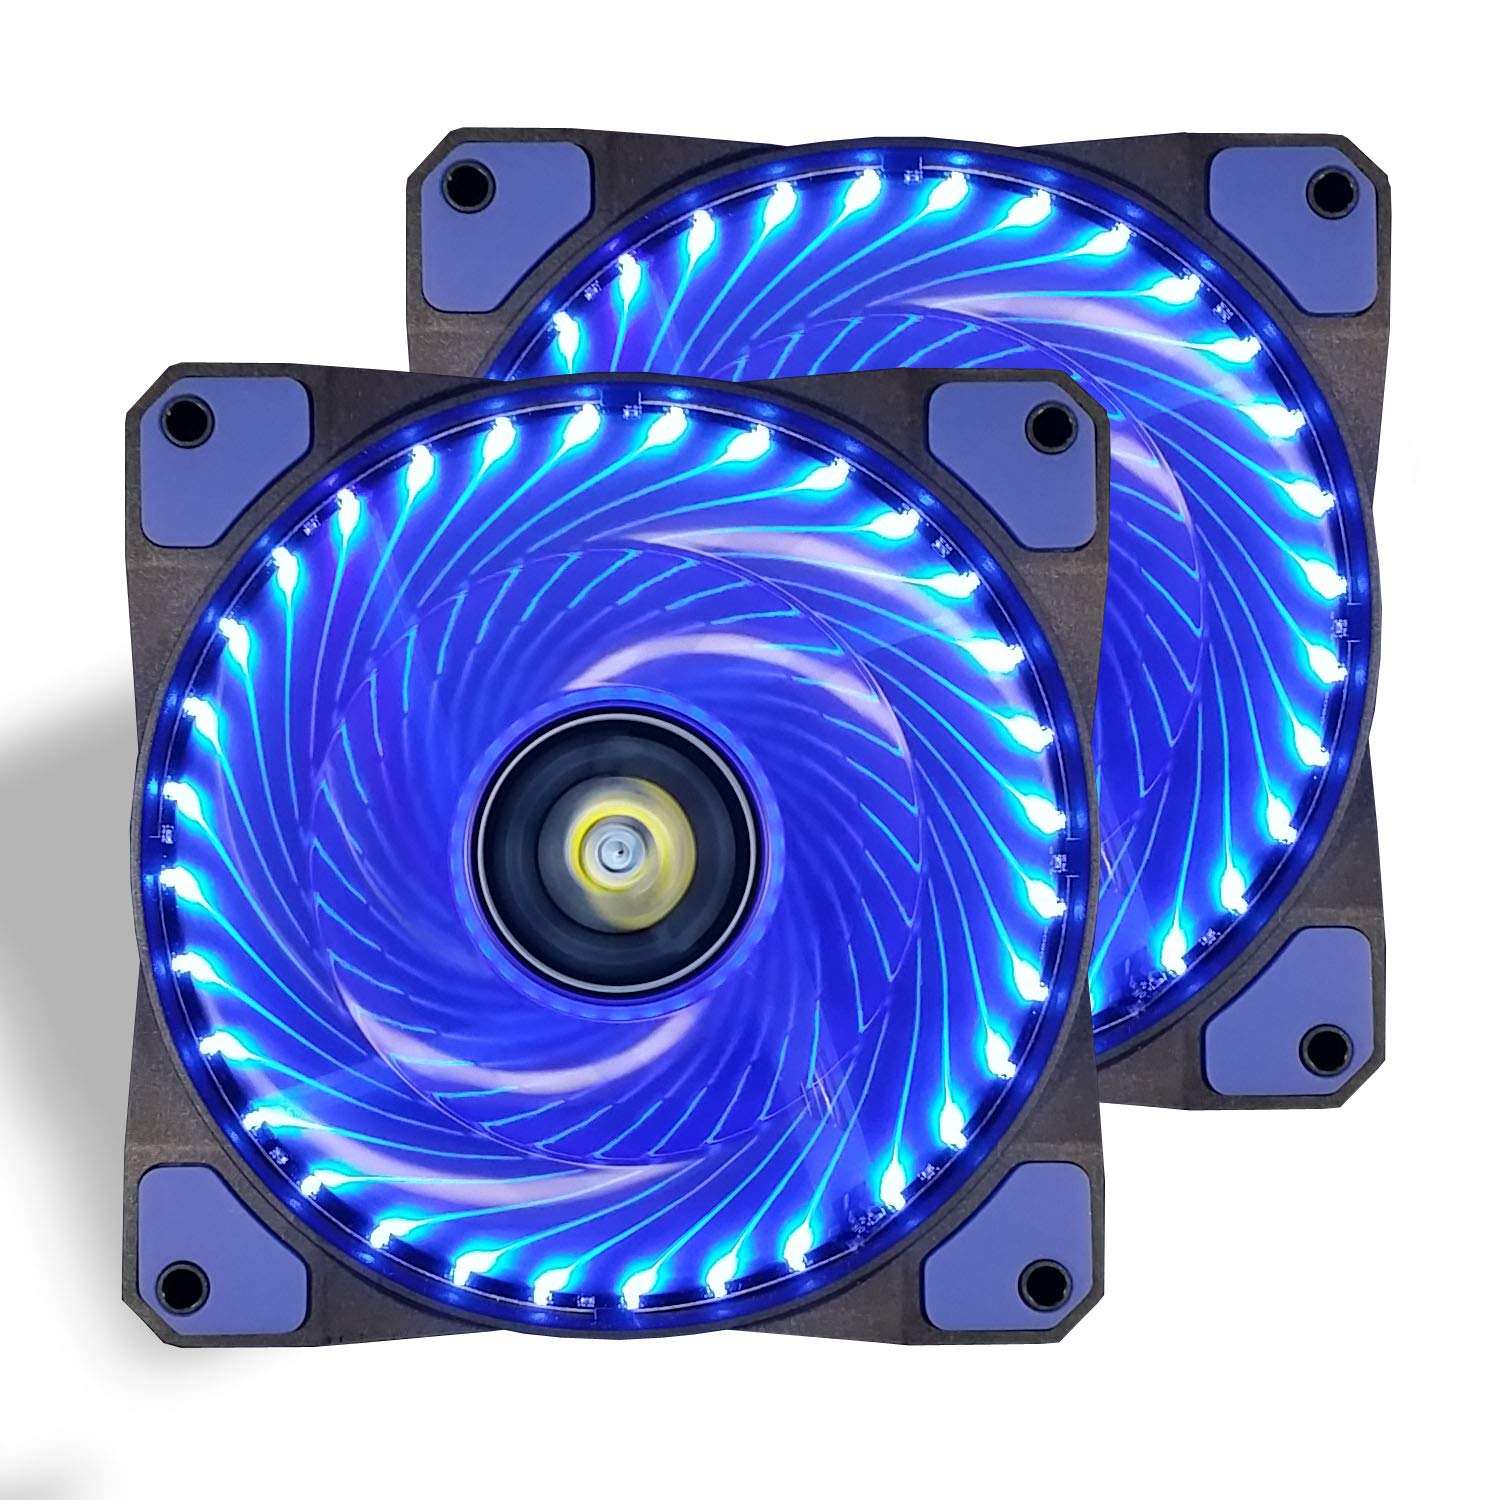 CONISY 120mm PC Case Cooling Fan Super Silent Computer LED High Airflow Cooler Fans - Blue (2 Pack)